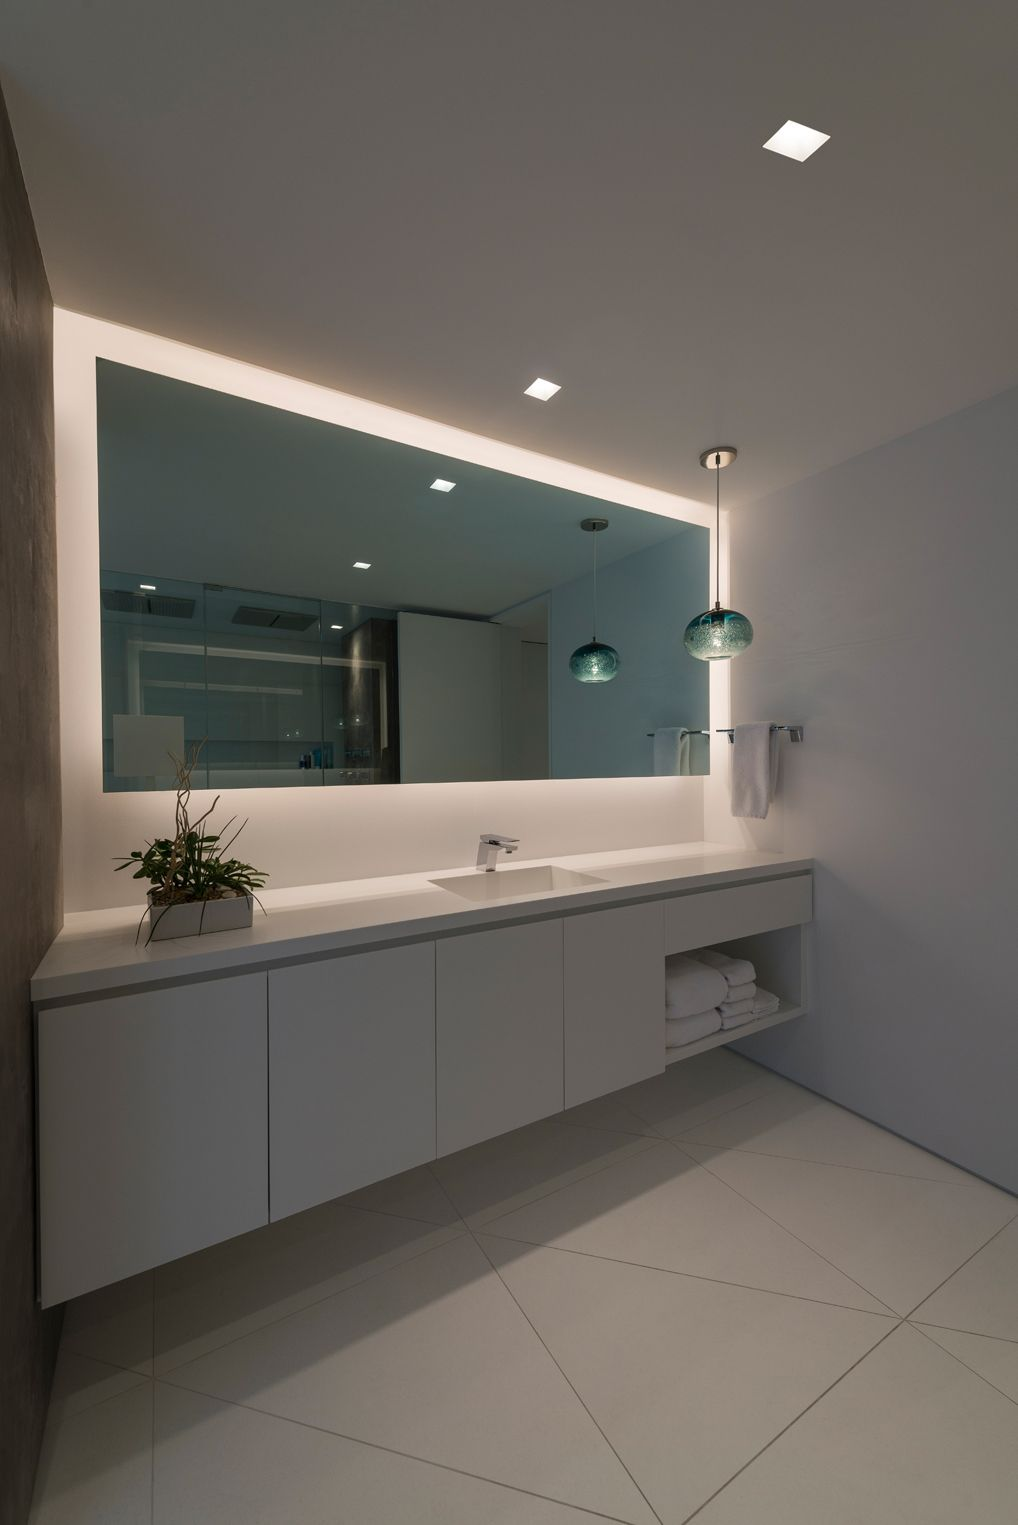 Bathroom Mirrors And Lighting Best fascinating modern bathroom ideas modern architecture browse a large selection of bathroom vanity mirror designs including frameless beveled and lighted bathroom wall mirrors in all shapes audiocablefo